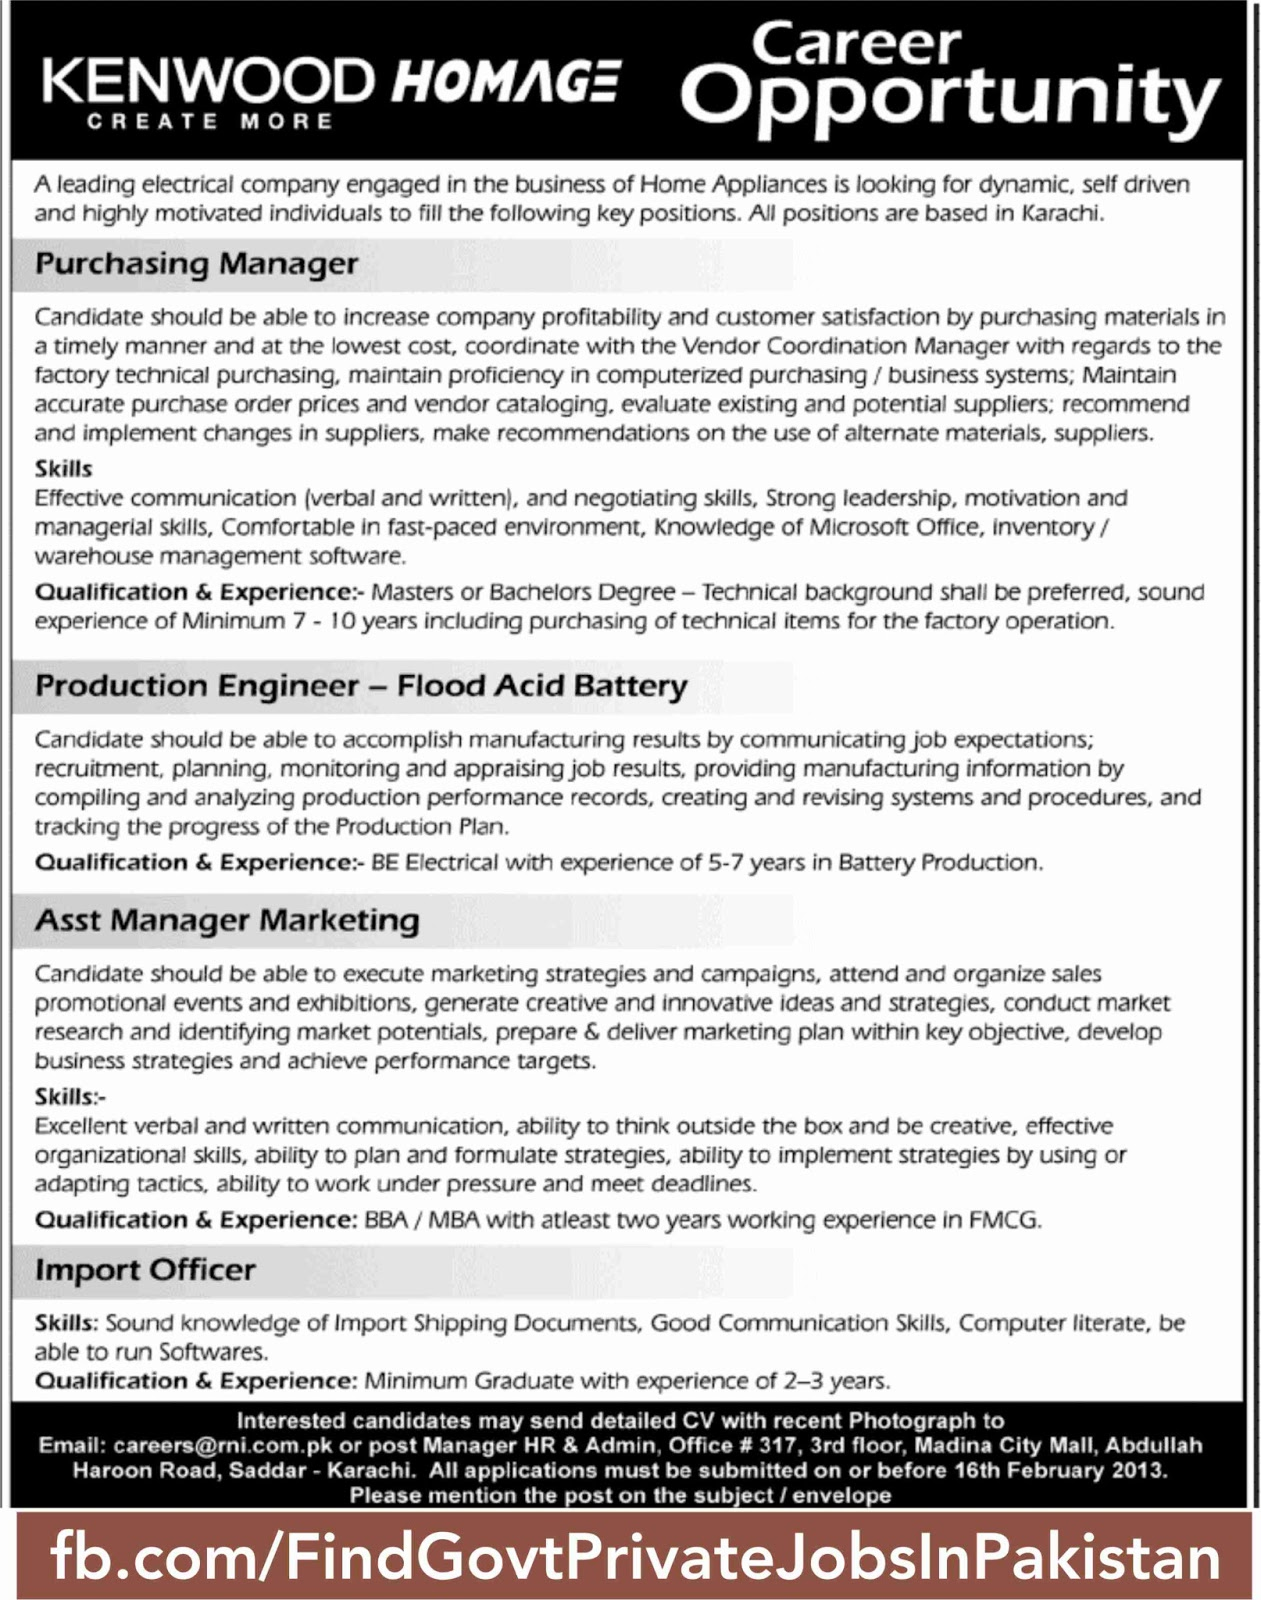 kenwood job opporutinty